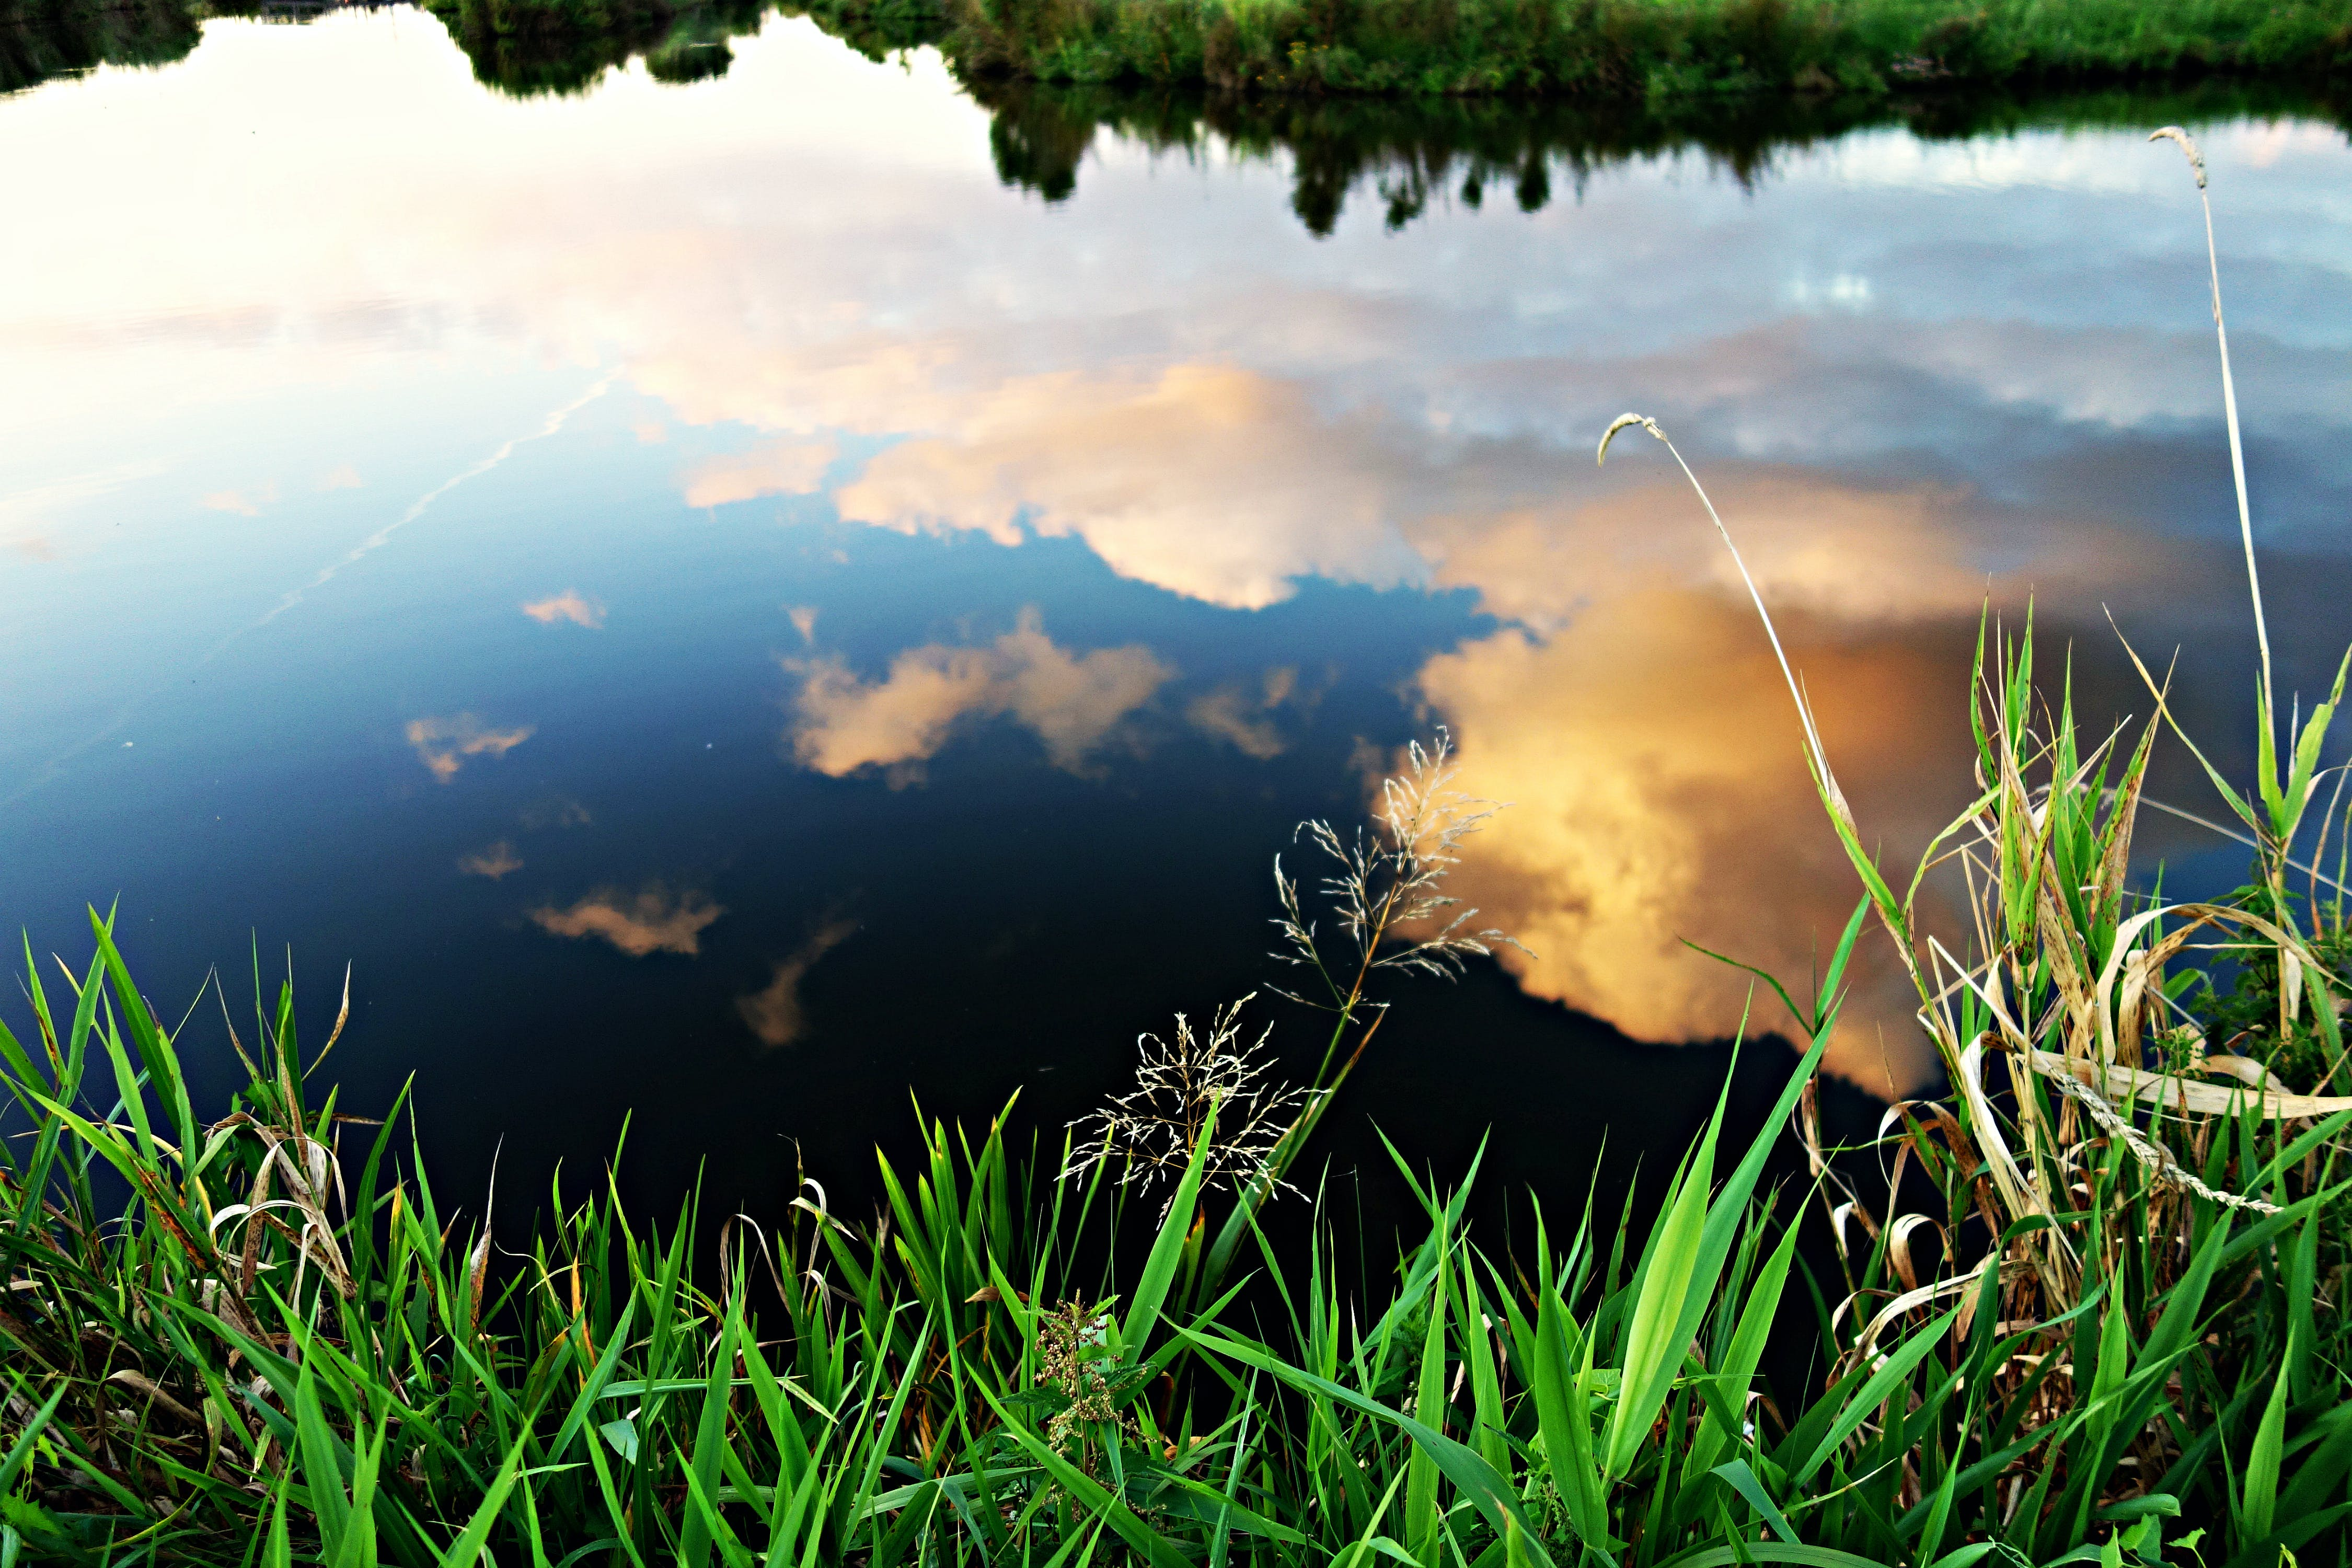 Reflection of White Clouds on Pond